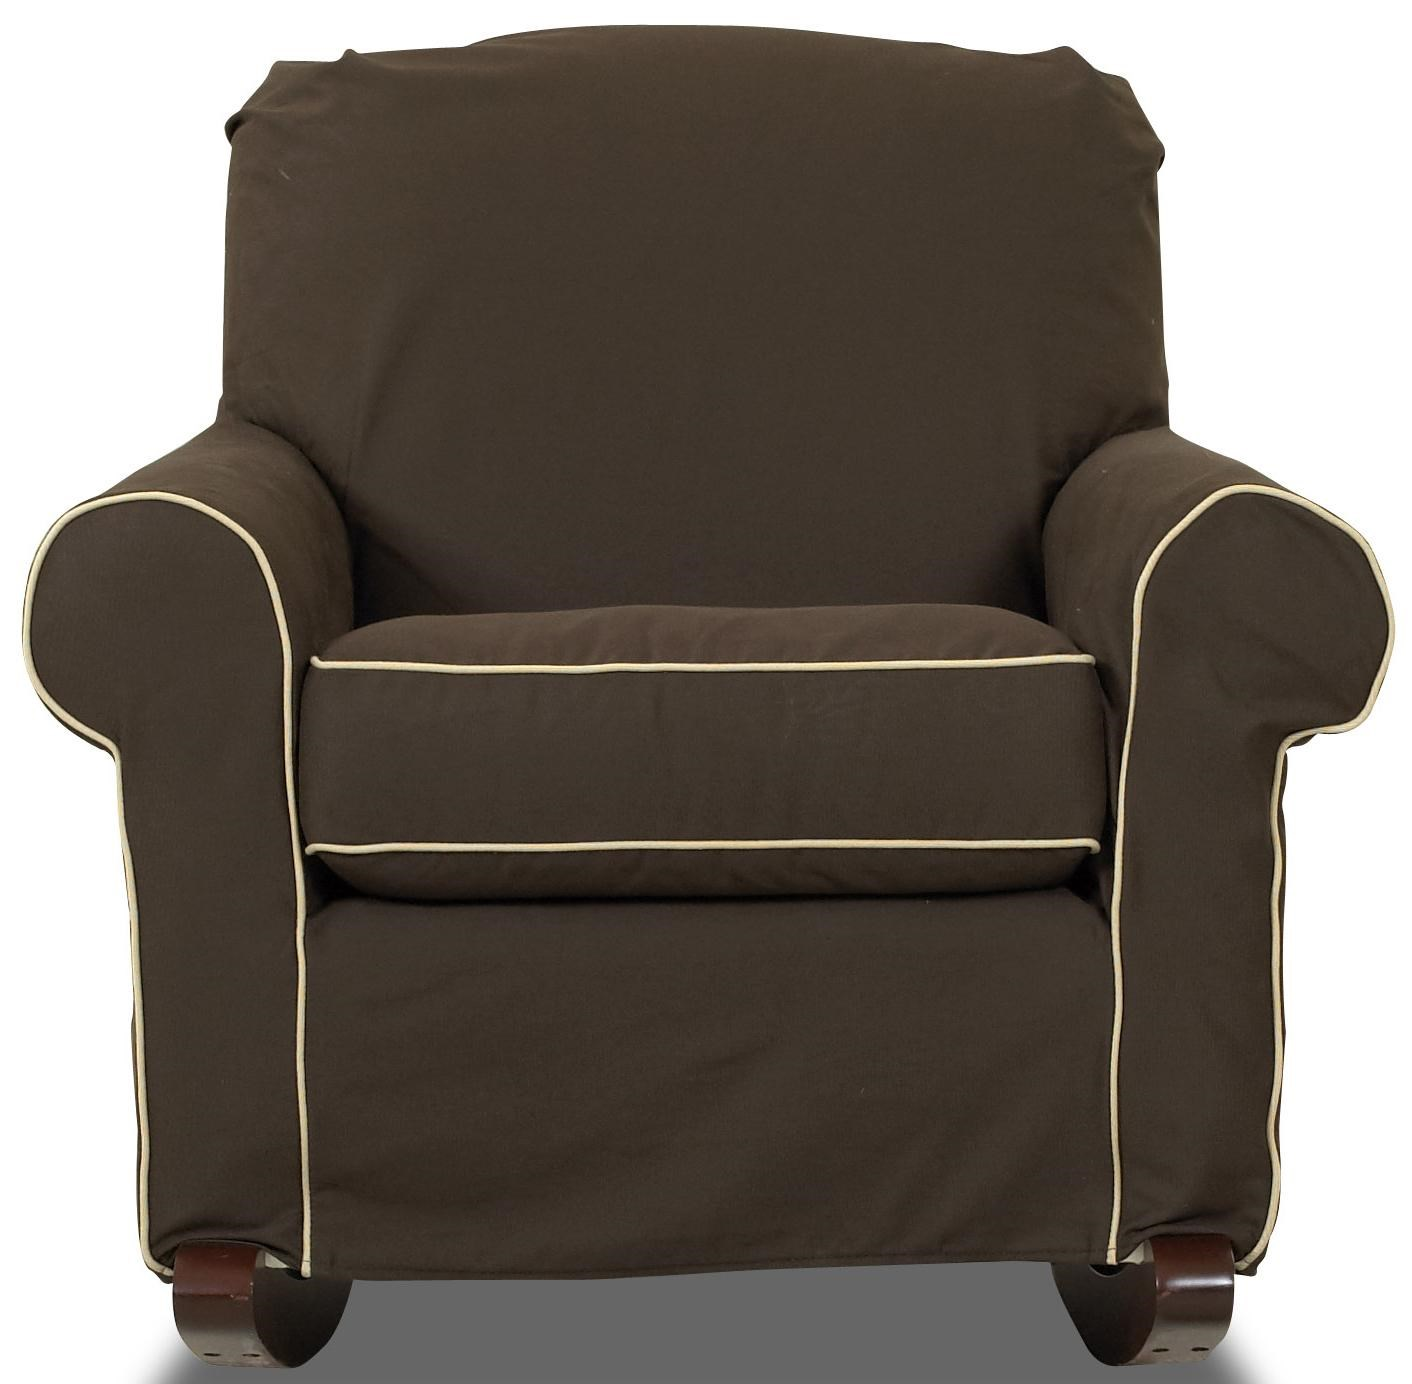 Klaussner Chairs And AccentsChair With Slip Cover ...